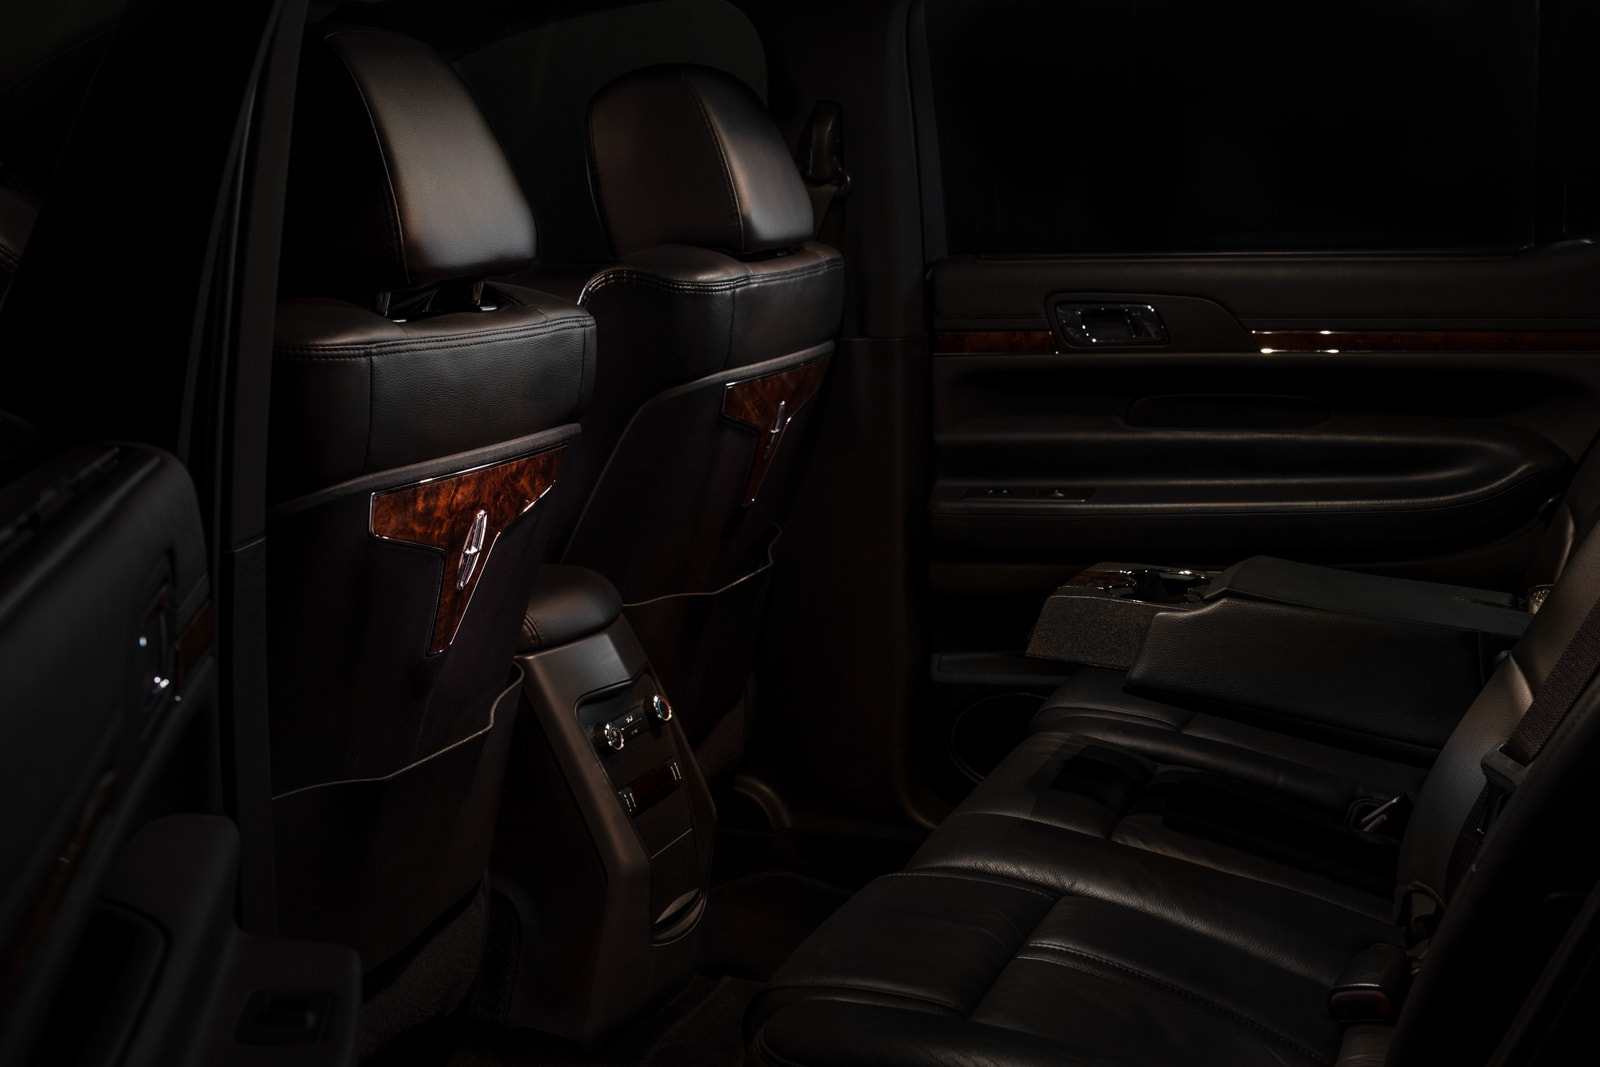 Lincoln MKT back seat representing the luxury in our limo rental service.